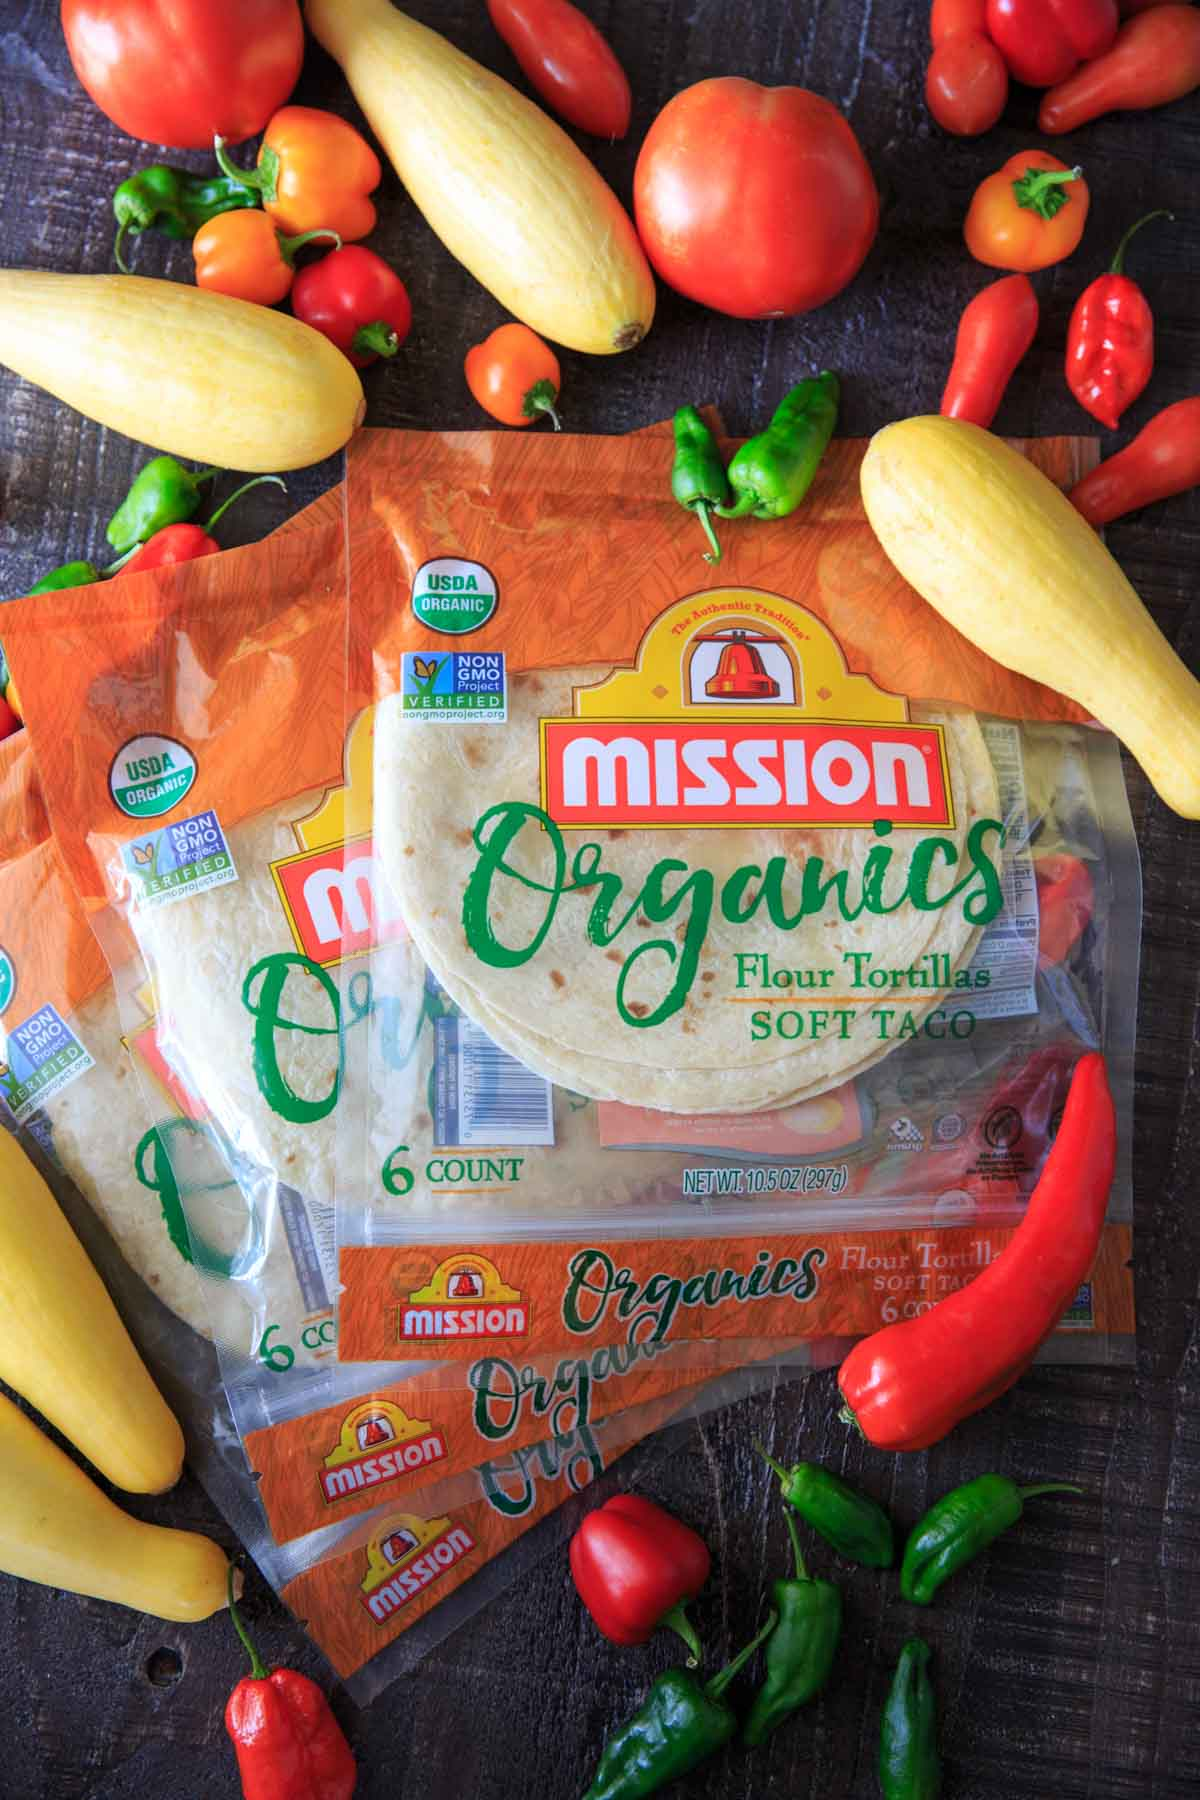 Mission Organics Tortillas with fresh produce